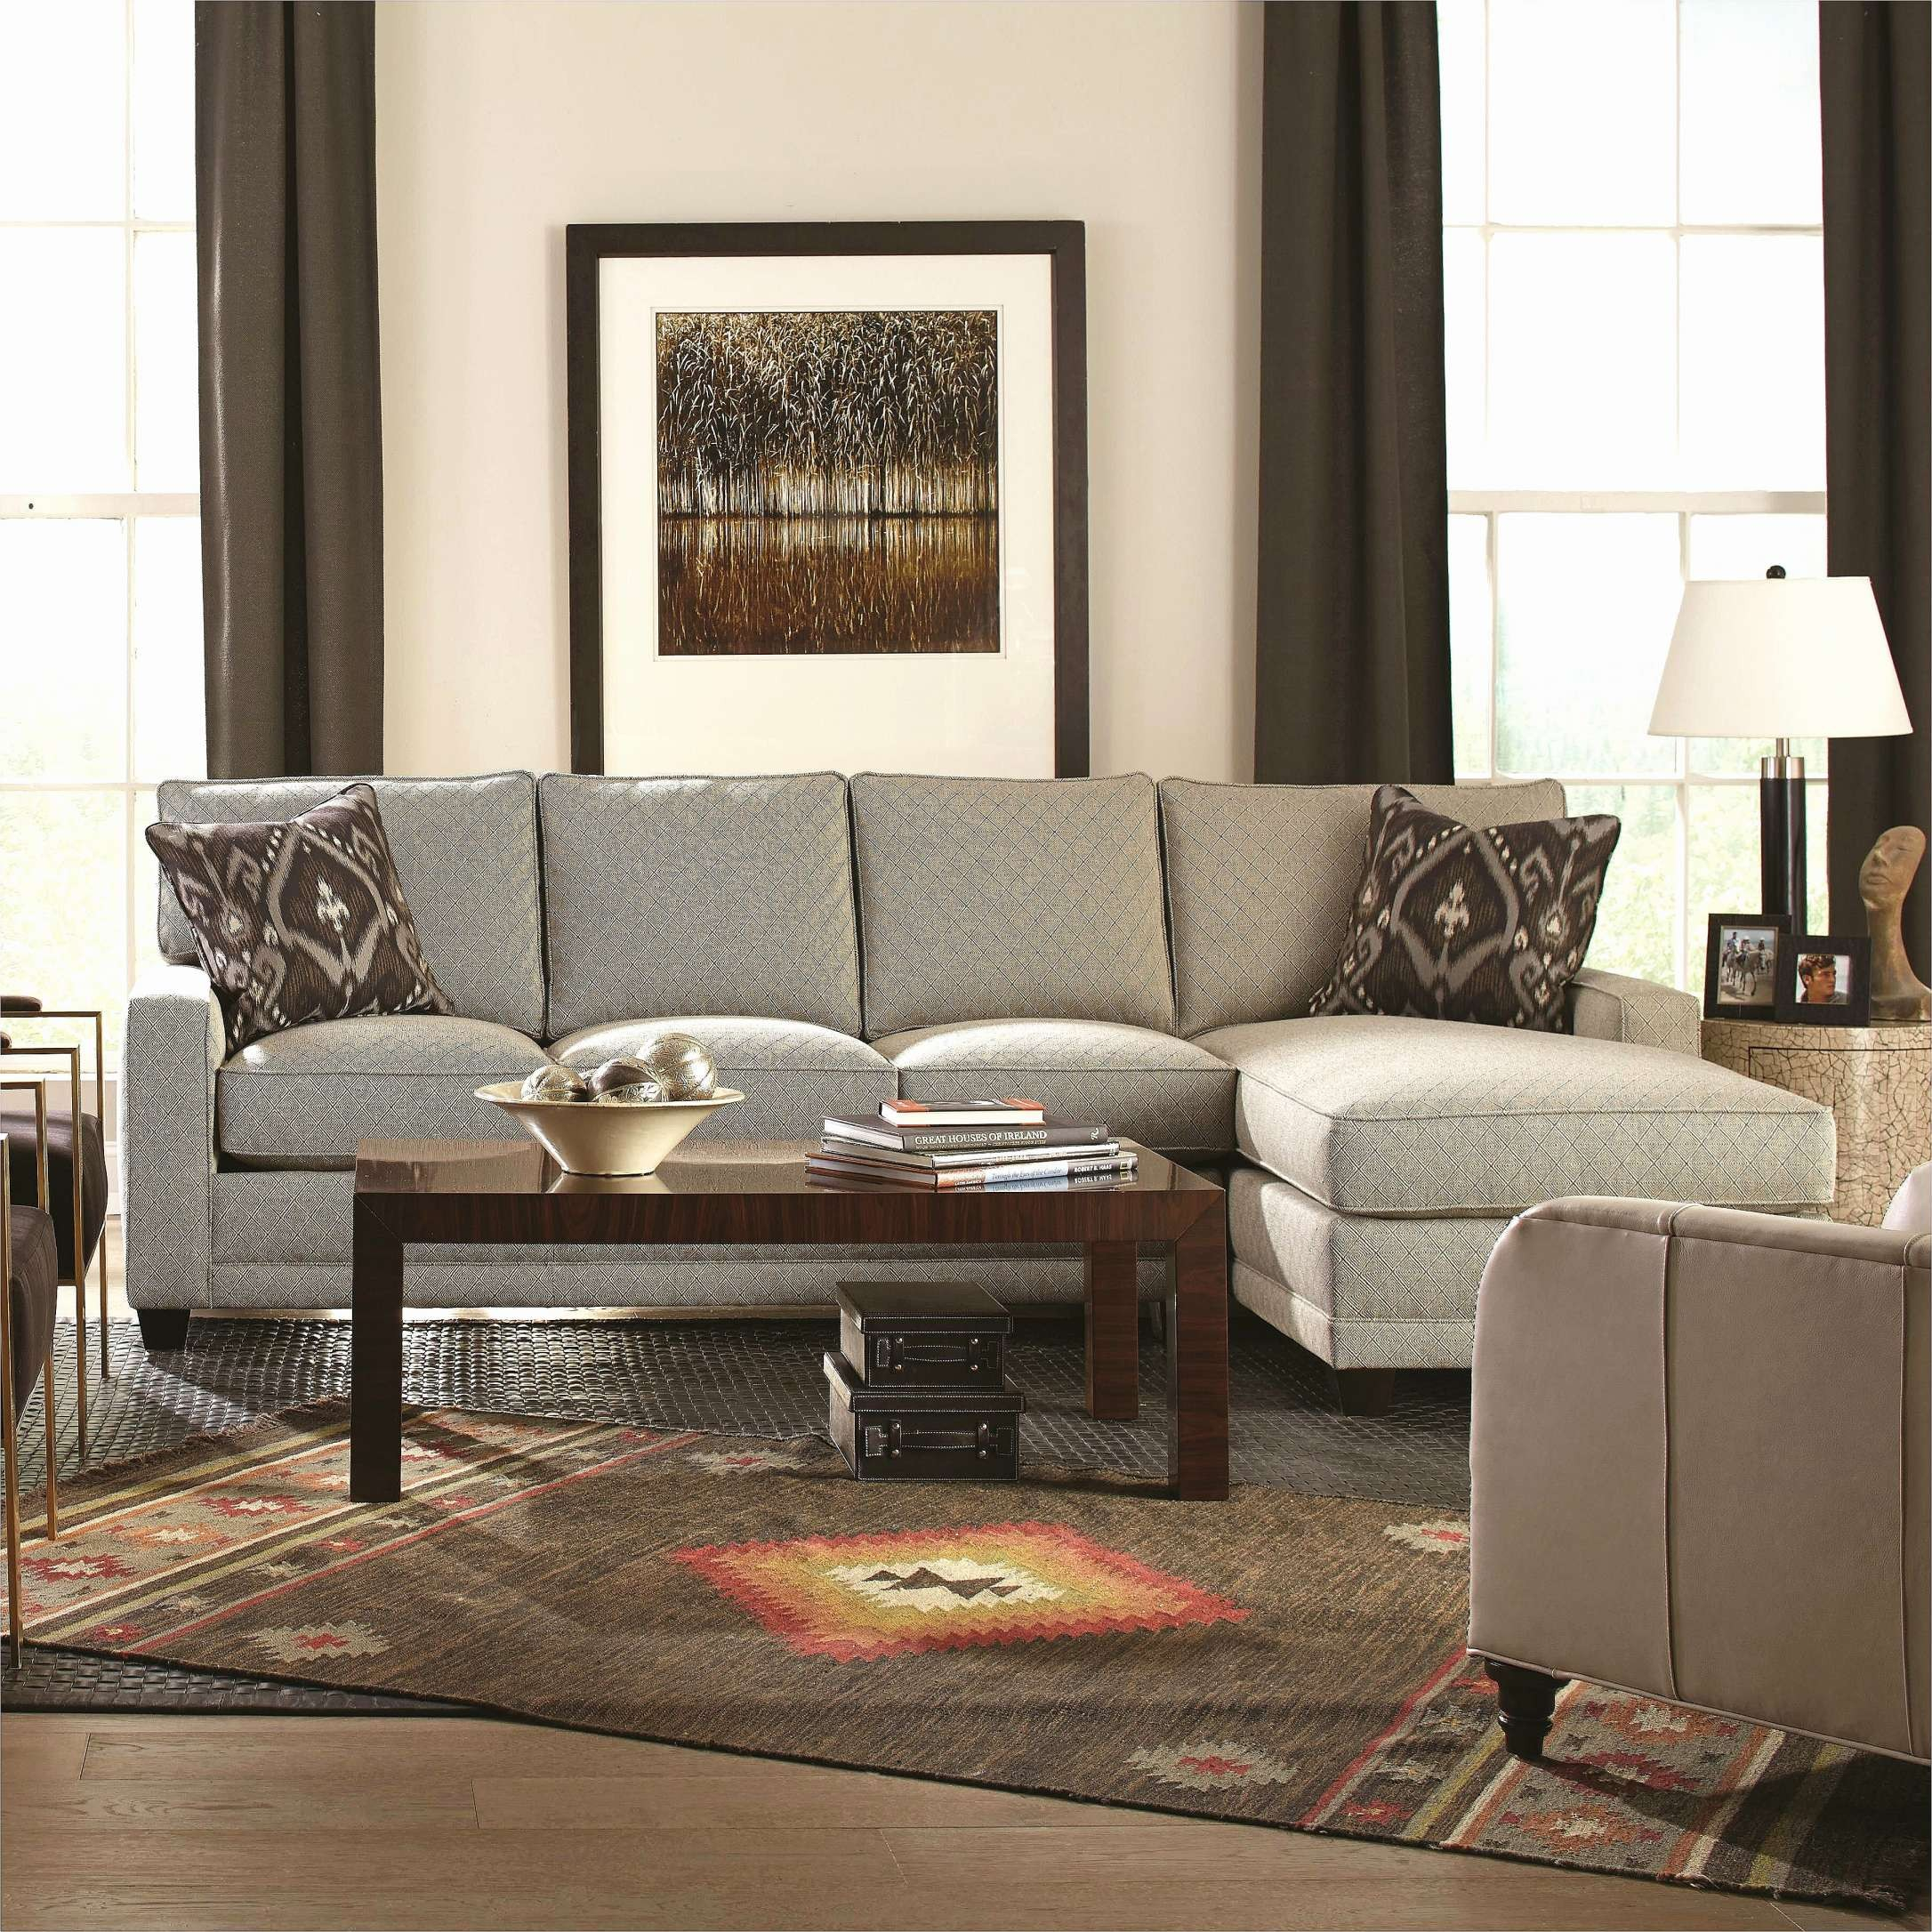 Living Room Furniture Boho Room Decor With Rooms To Go inside Rooms To Go Living Room Set